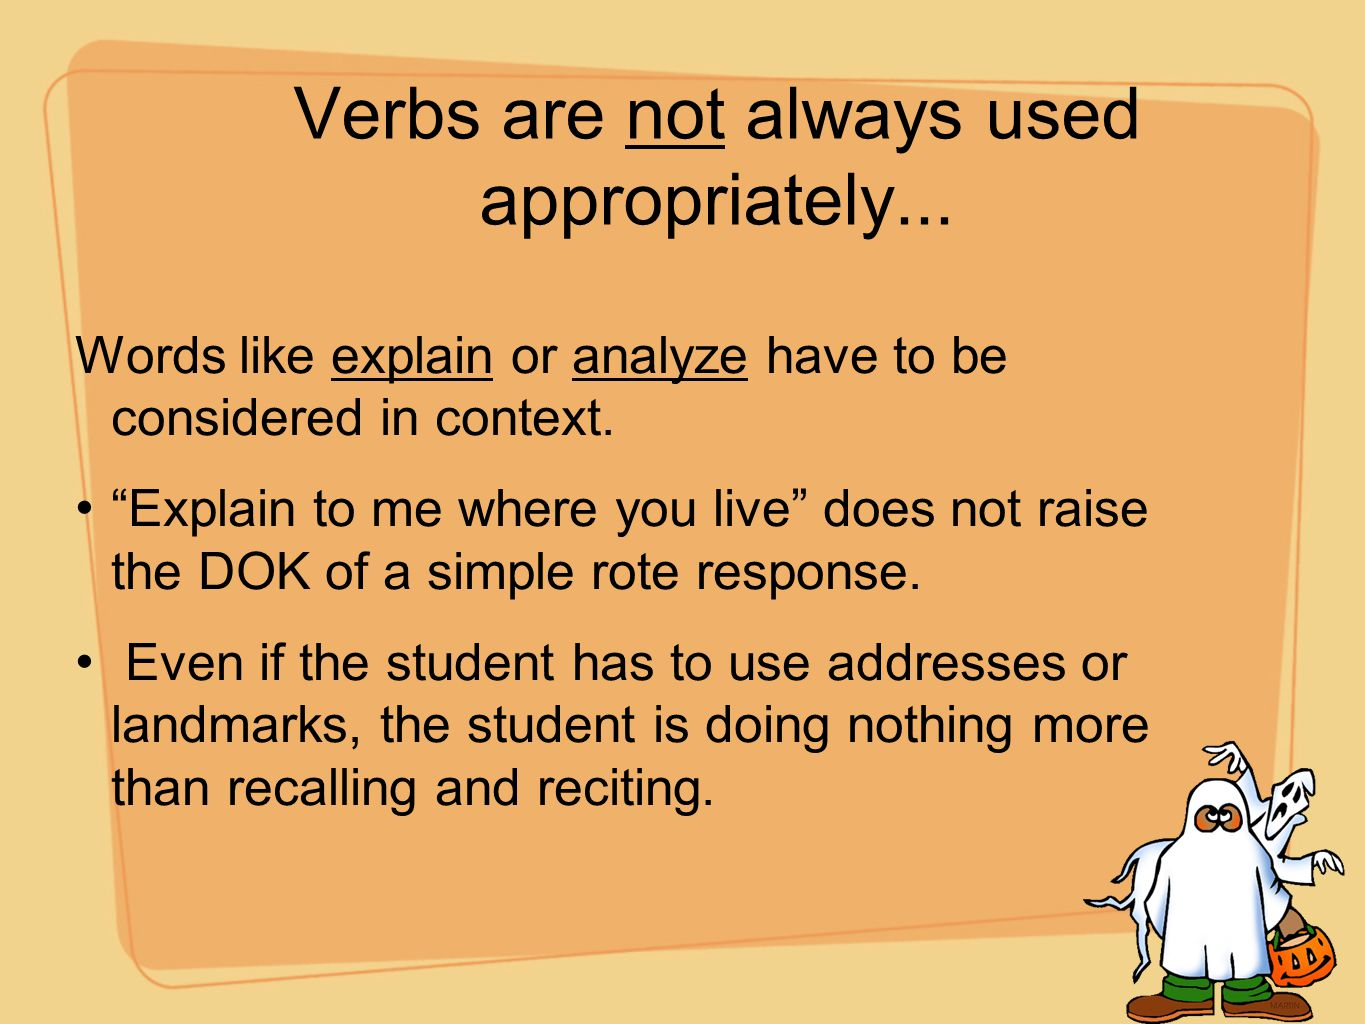 Verbs are not always used appropriately...